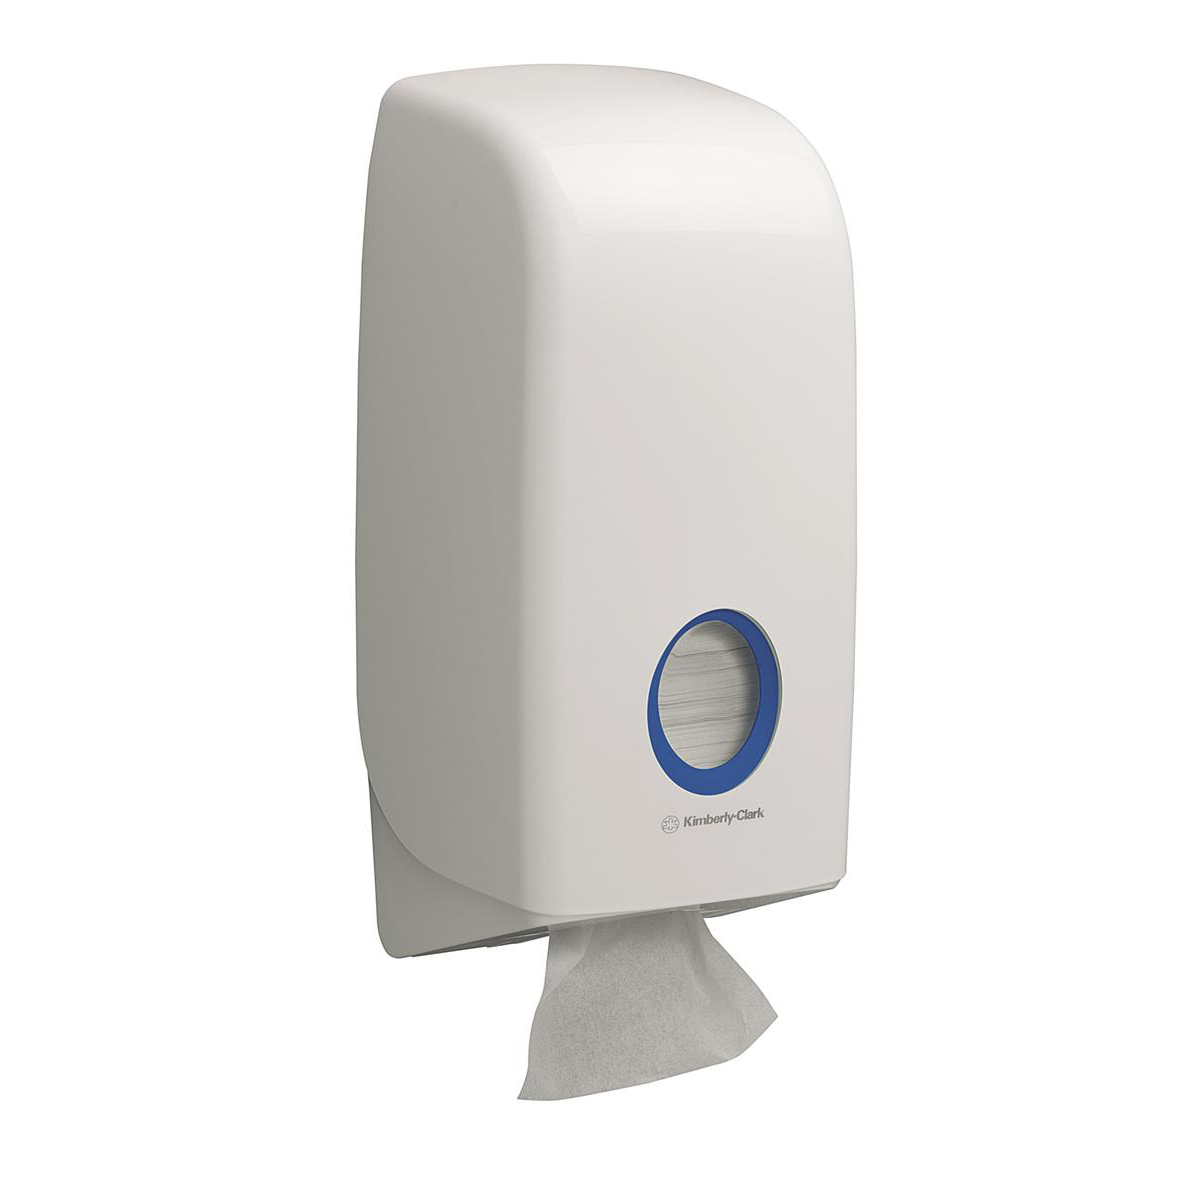 Kimberly-Clark AQUARIUS Bulk Pack Toilet Tissue Dispenser W169xD123xH341mm White Ref 6946